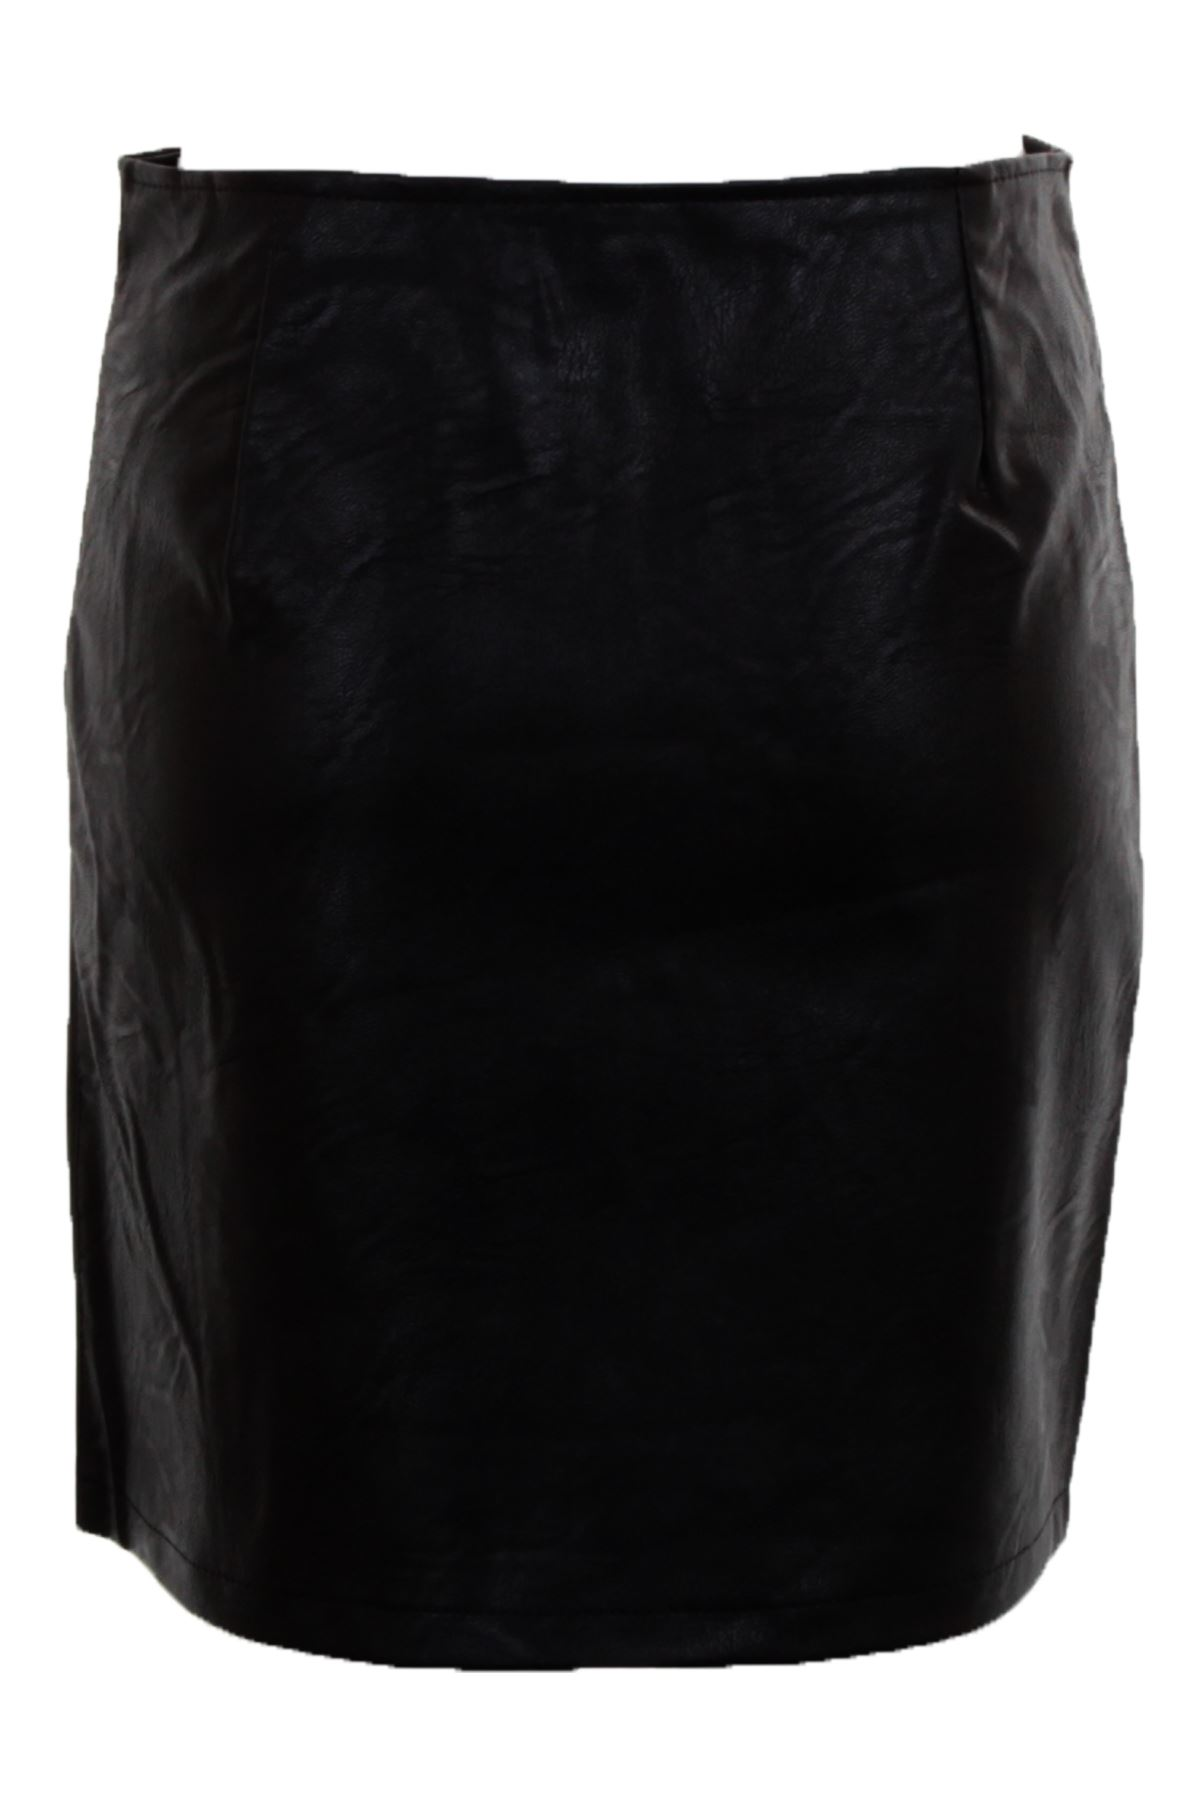 Womens High Waist Faux Leather Circle Zip Front PU A Line Mini Bodycon Skirt